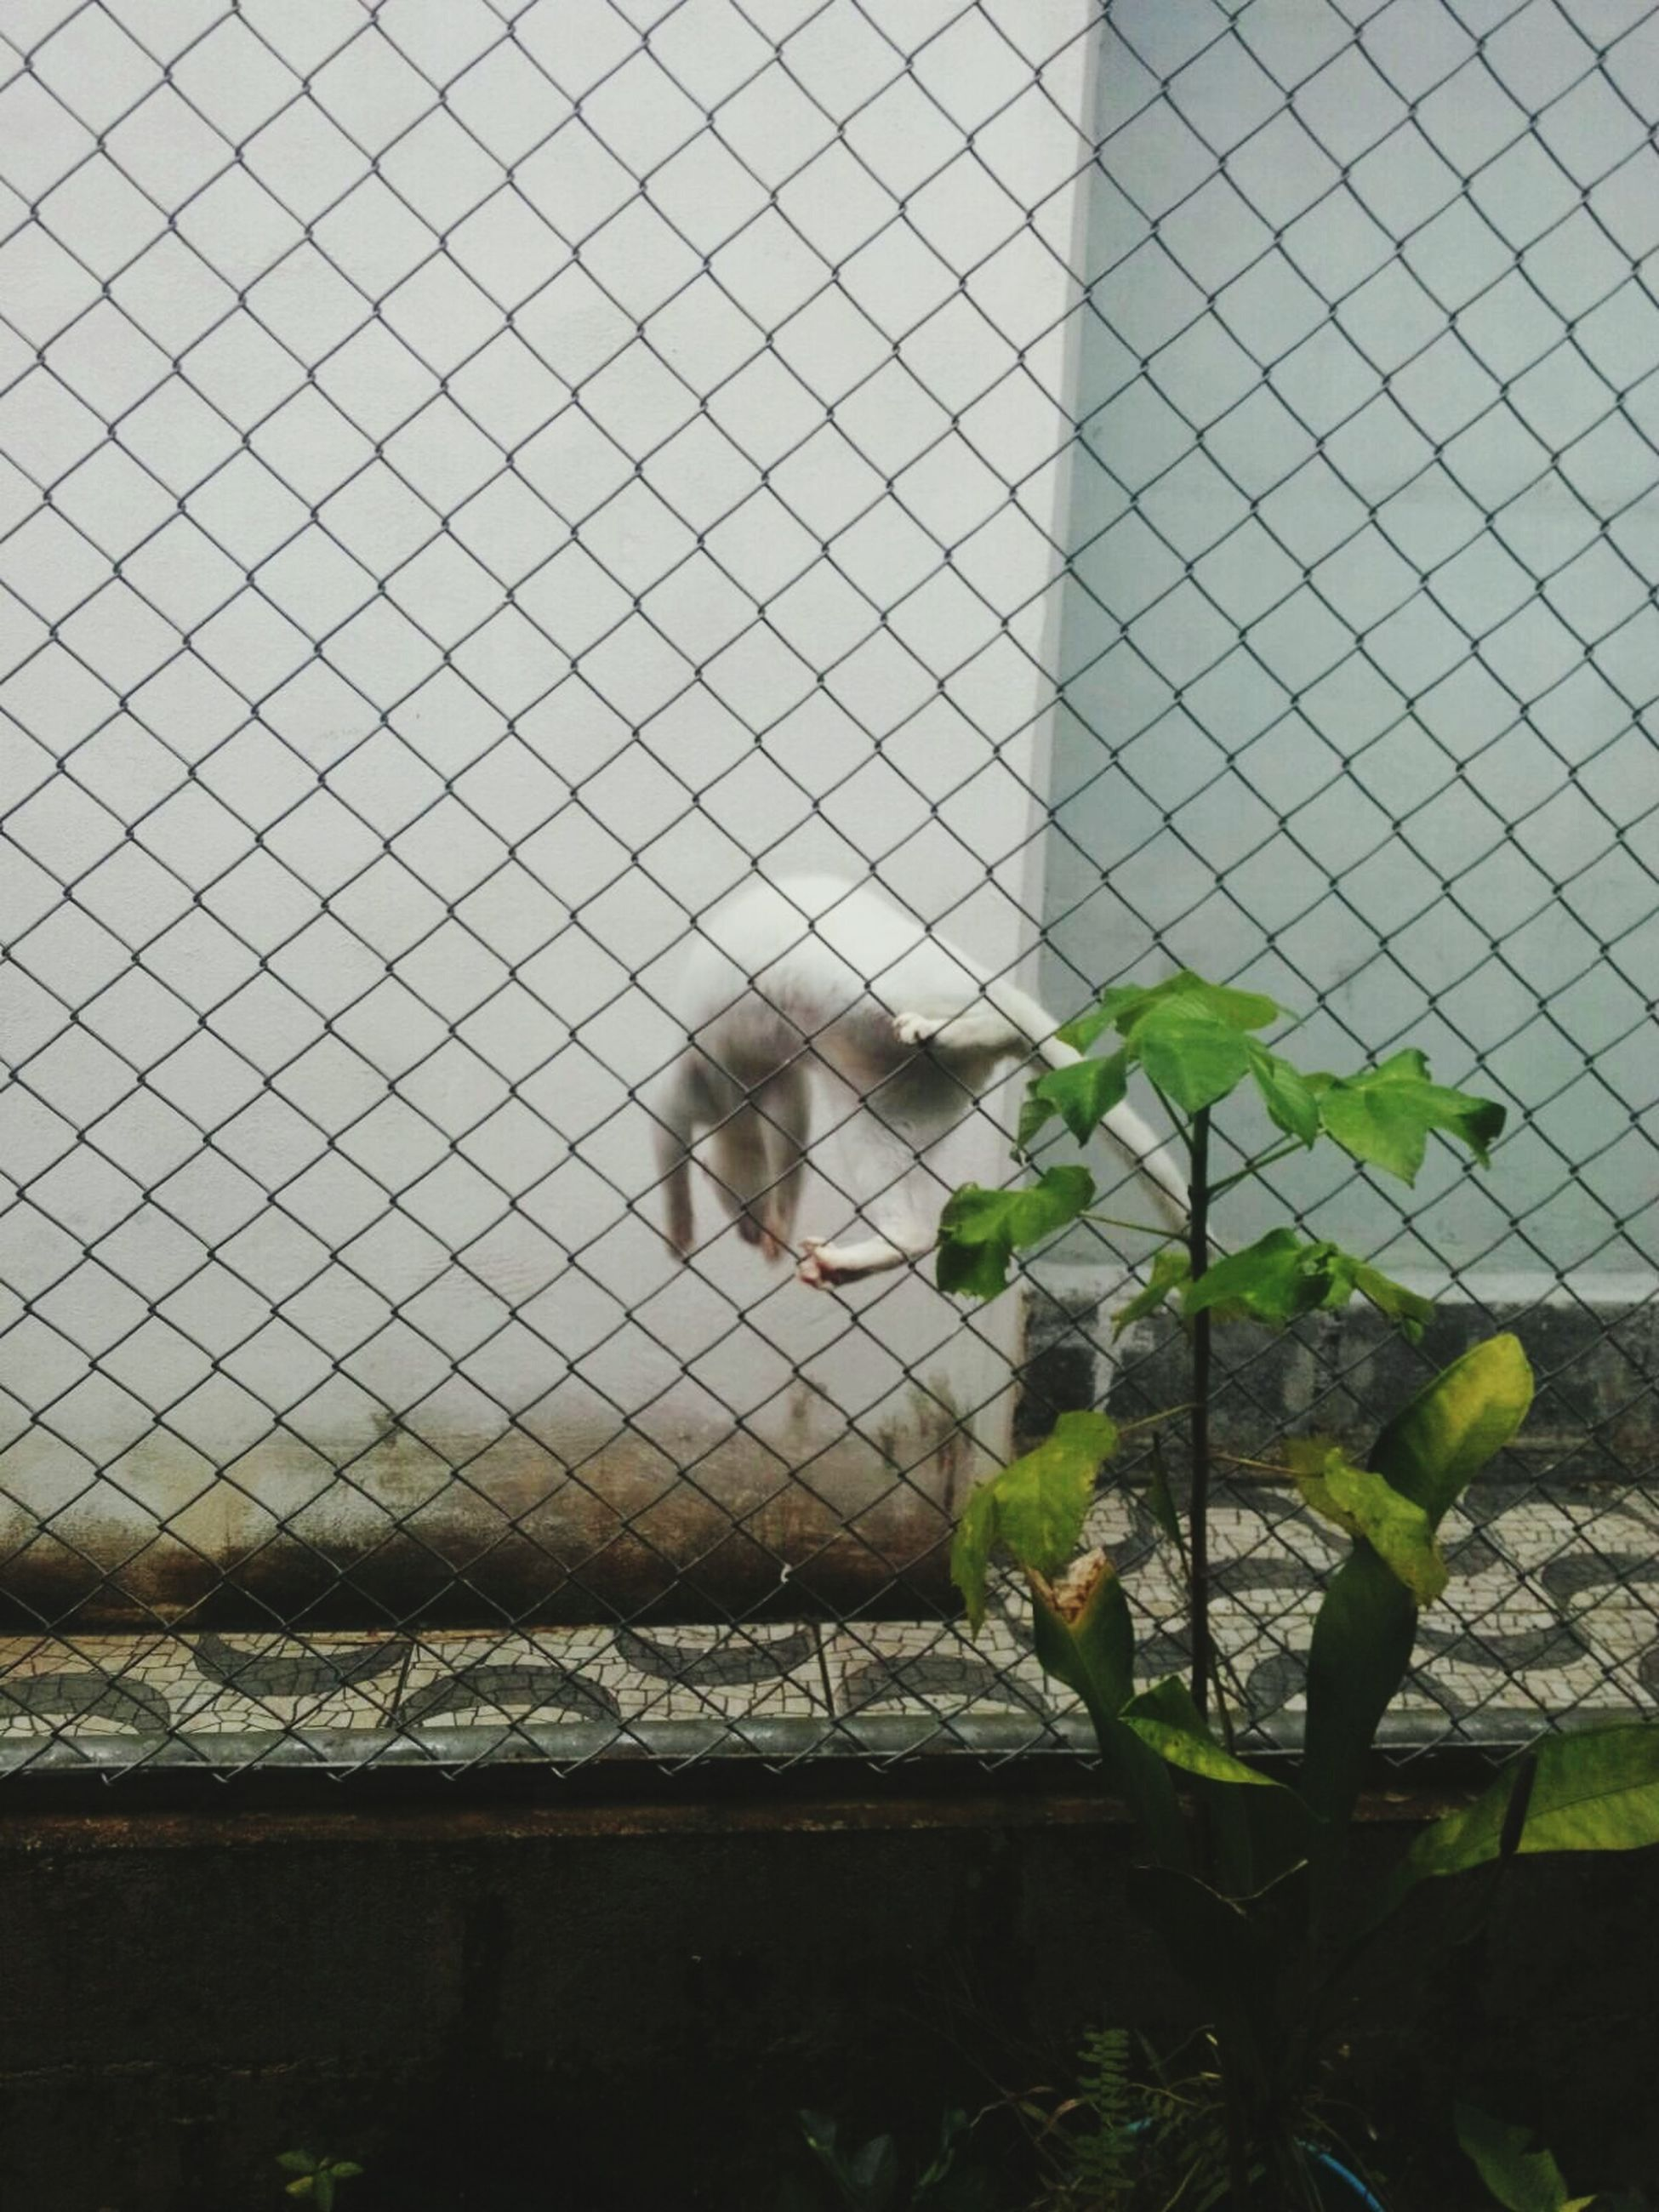 water, built structure, chainlink fence, architecture, fence, building exterior, wall - building feature, protection, safety, day, outdoors, nature, plant, sea, no people, metal, security, sky, wall, growth